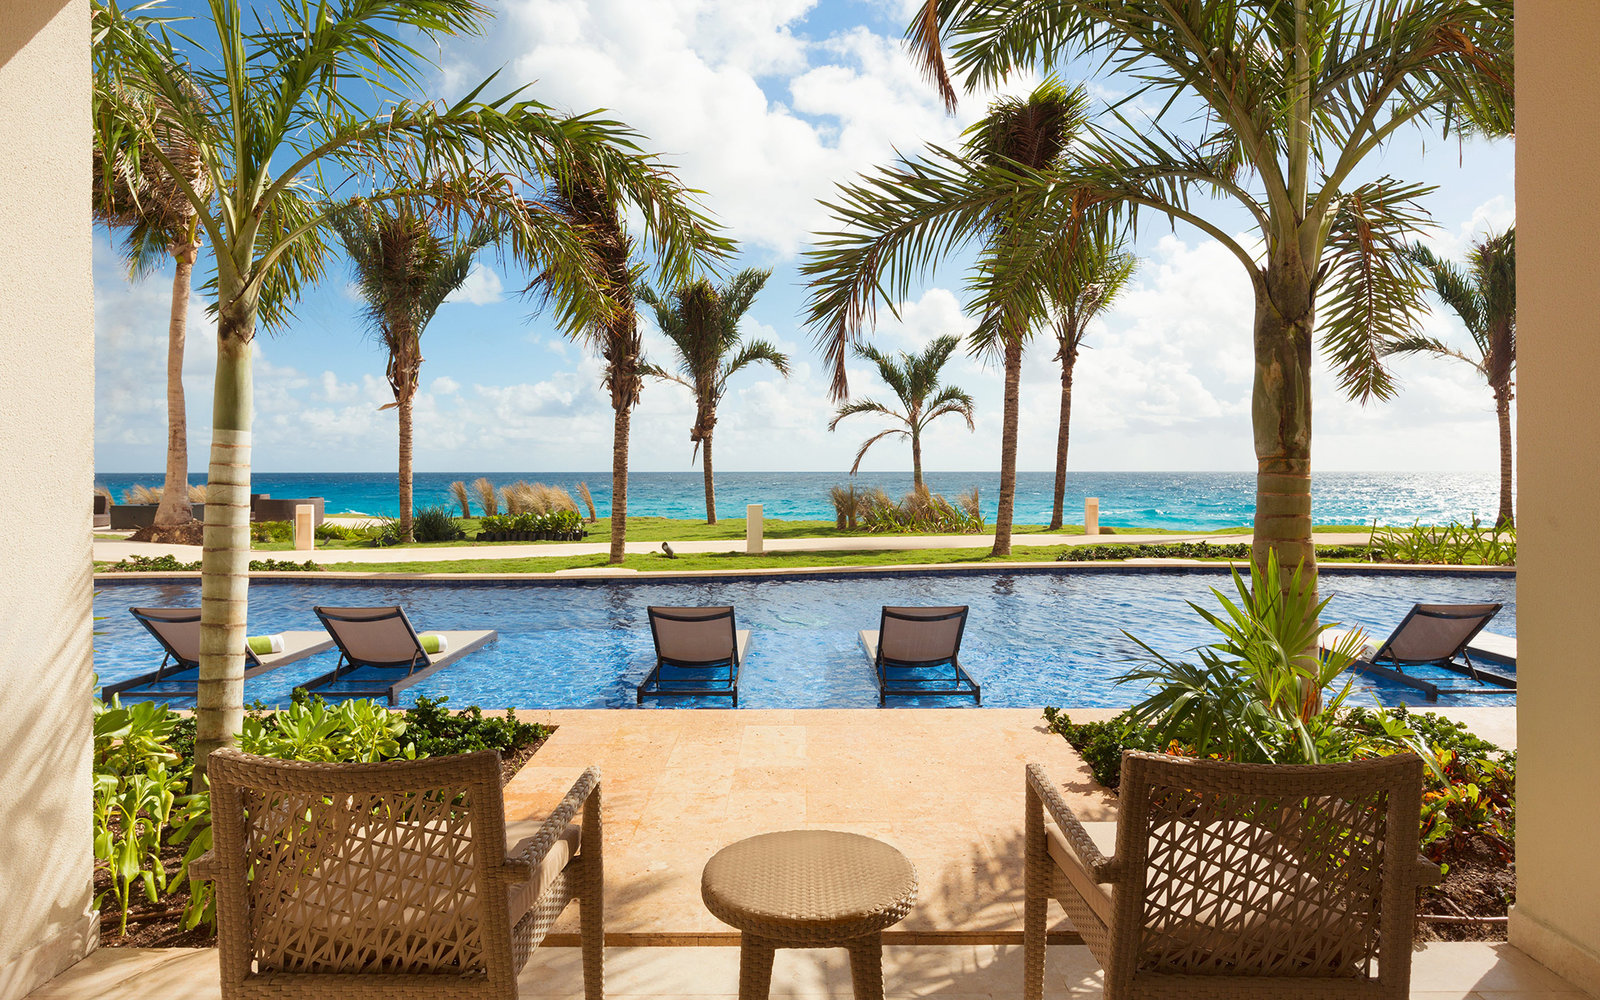 All-Inclusive Caribbean Resorts for Group Getaways